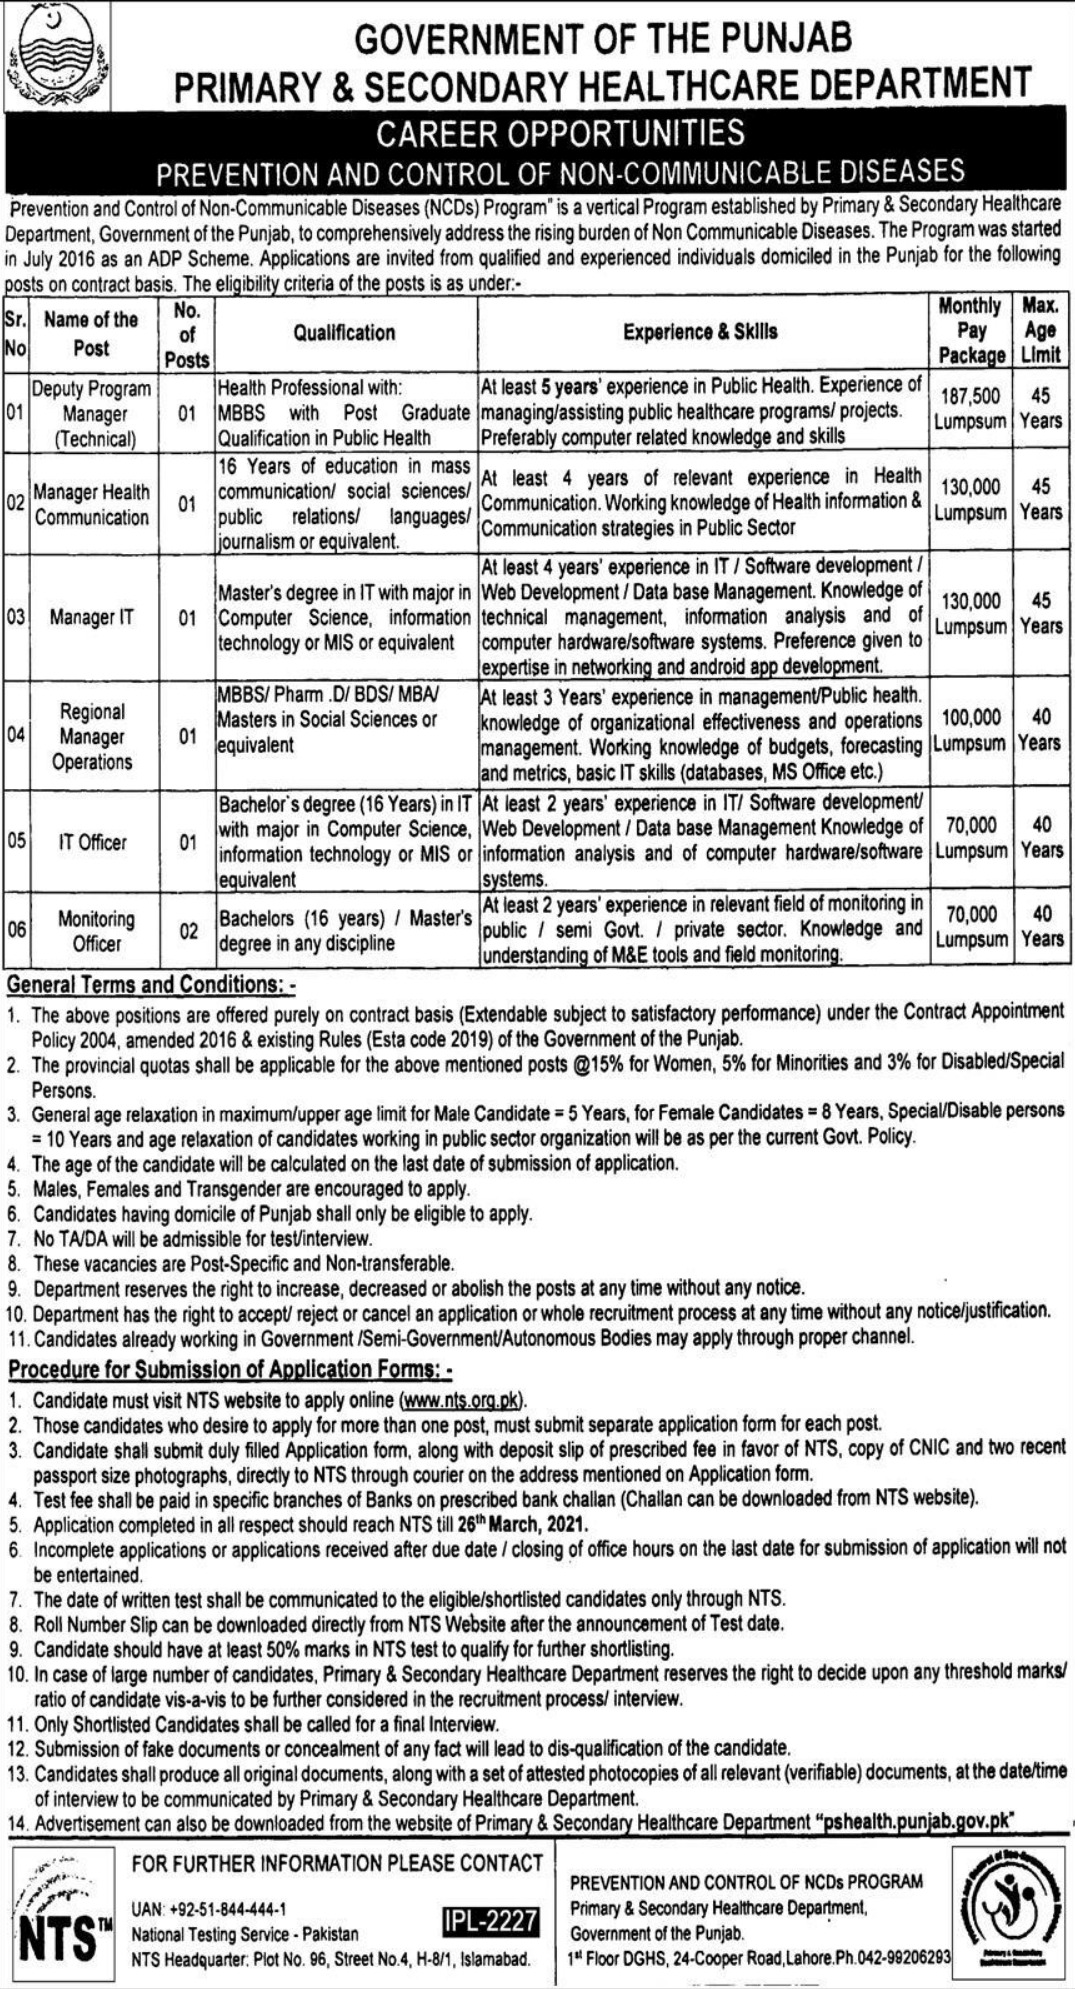 Primary & Secondary Healthcare Department Punjab Jobs March 2021